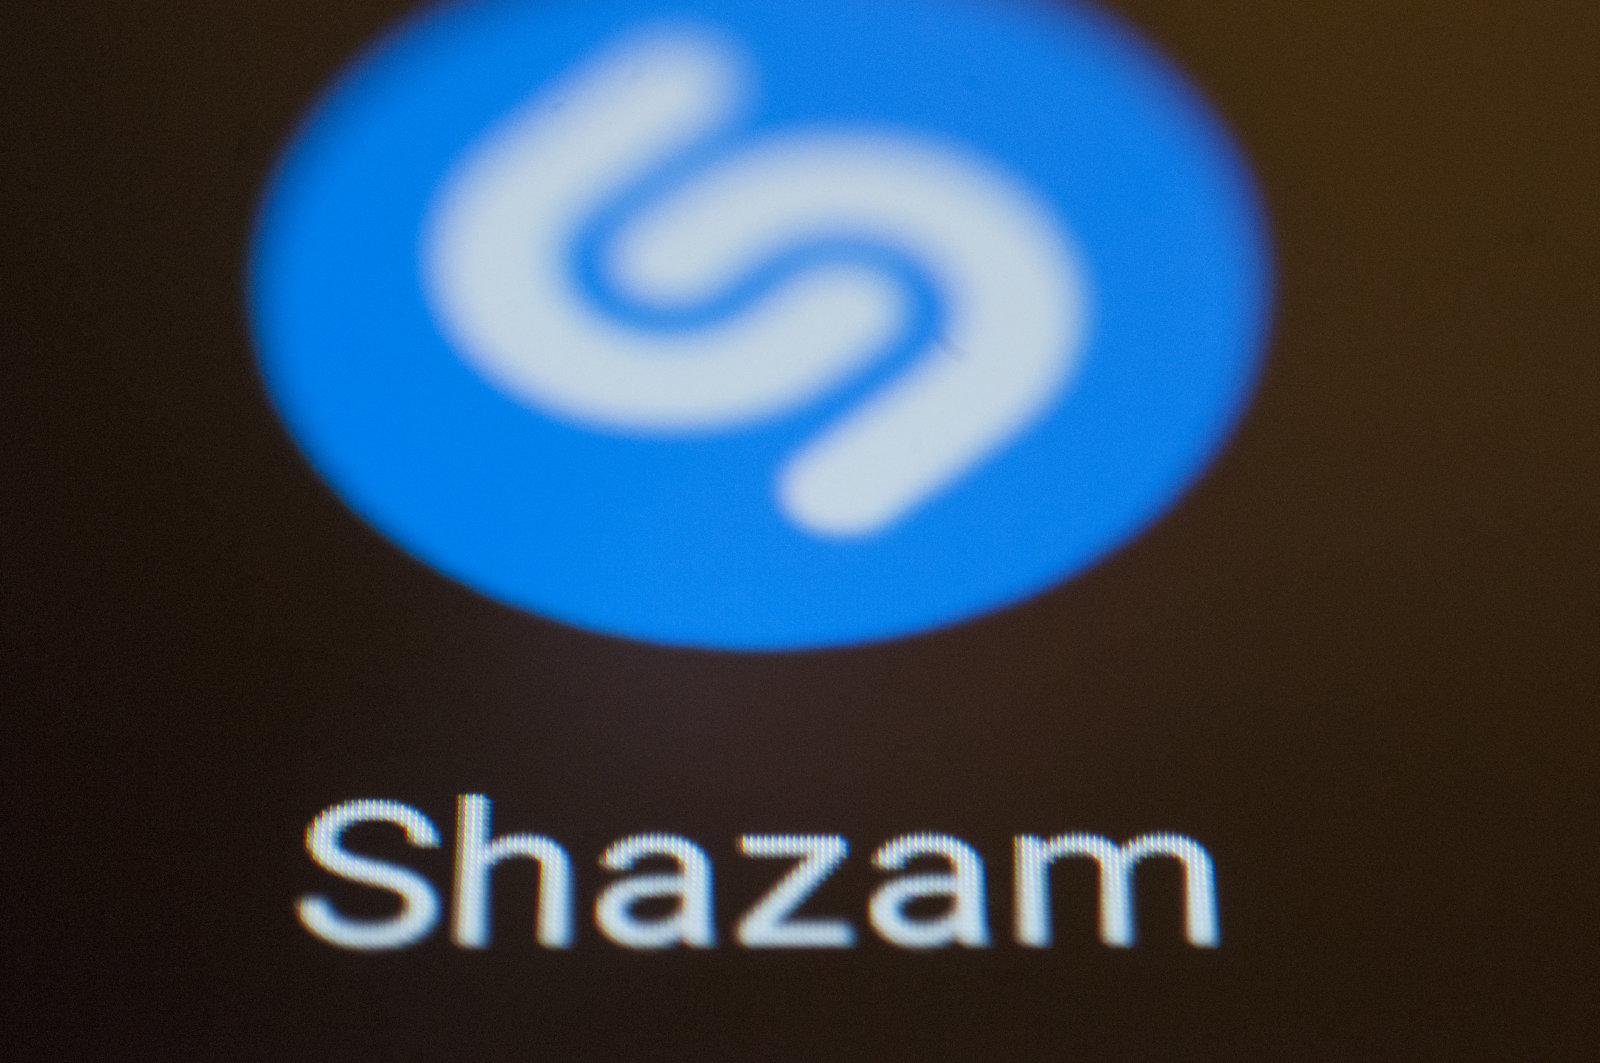 A Shazam music recognition app is seen on an Android portable device on February 5, 2018. (Photo by Jaap Arriens/NurPhoto via Getty Images)